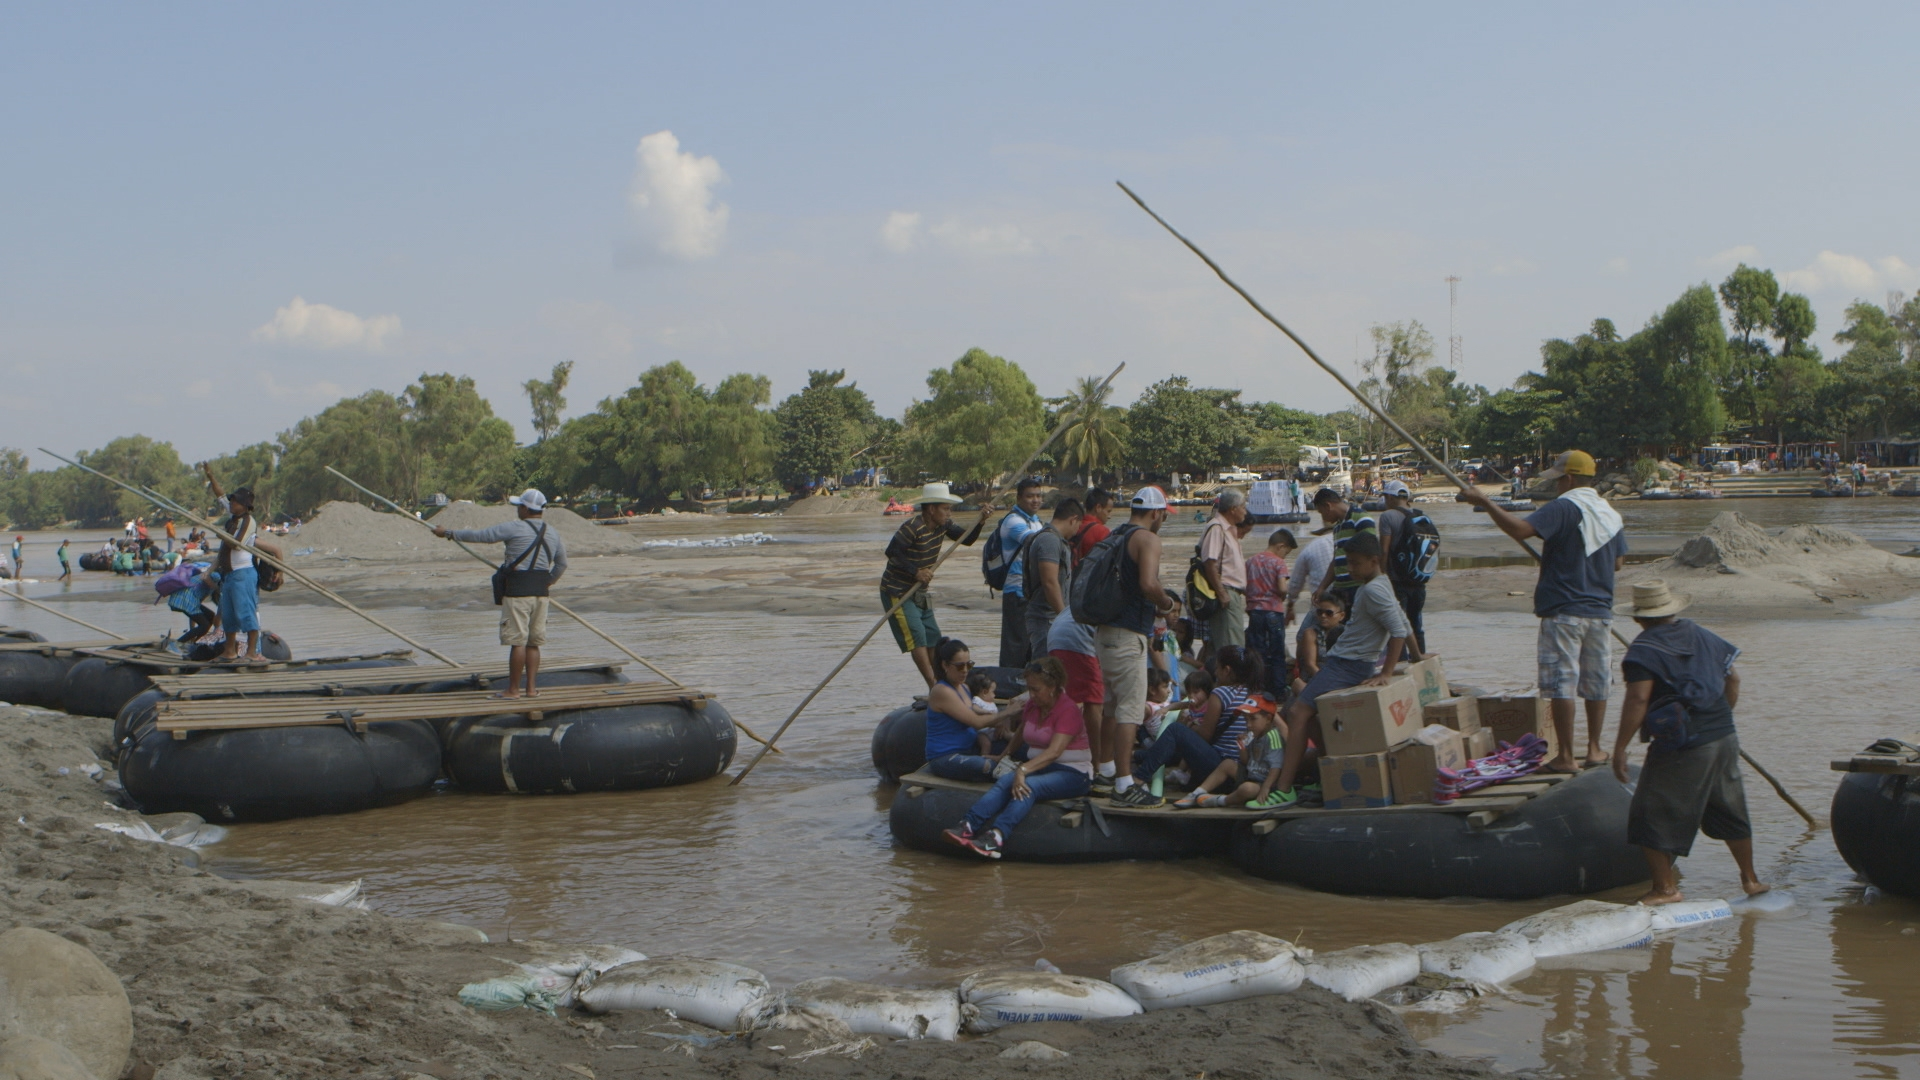 Migrants crossing the river